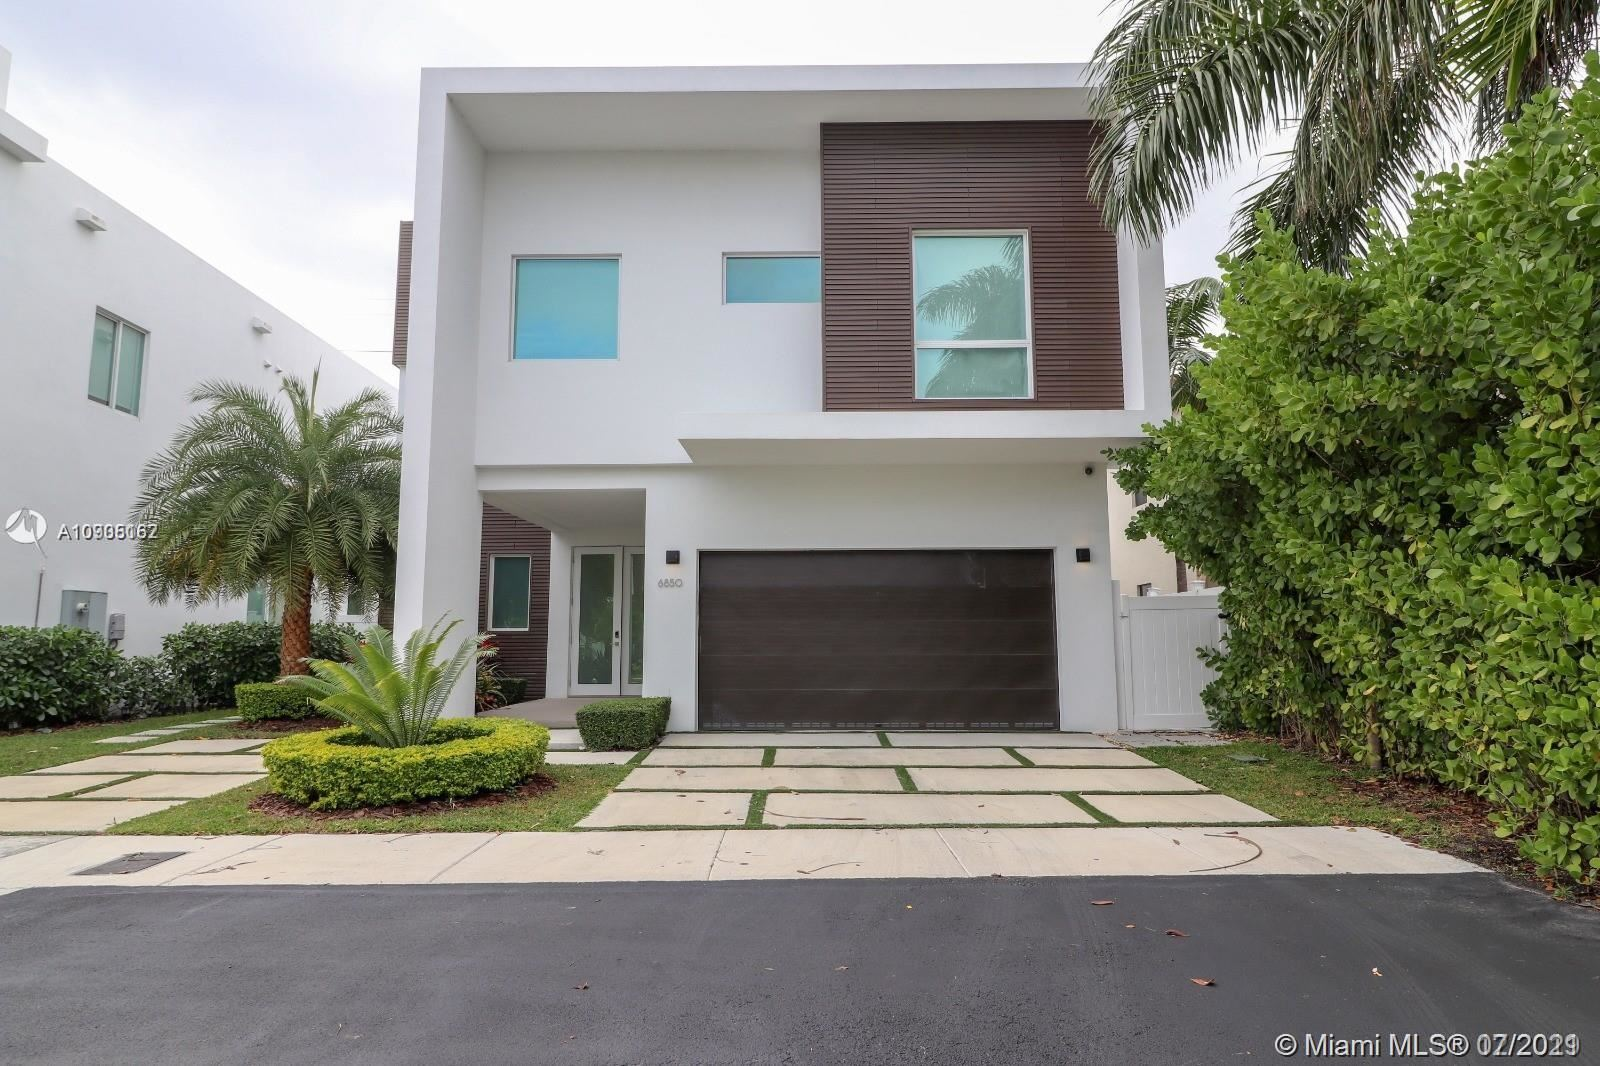 6850 NW 106th Ave, Doral, FL 33178 - #: A10905162